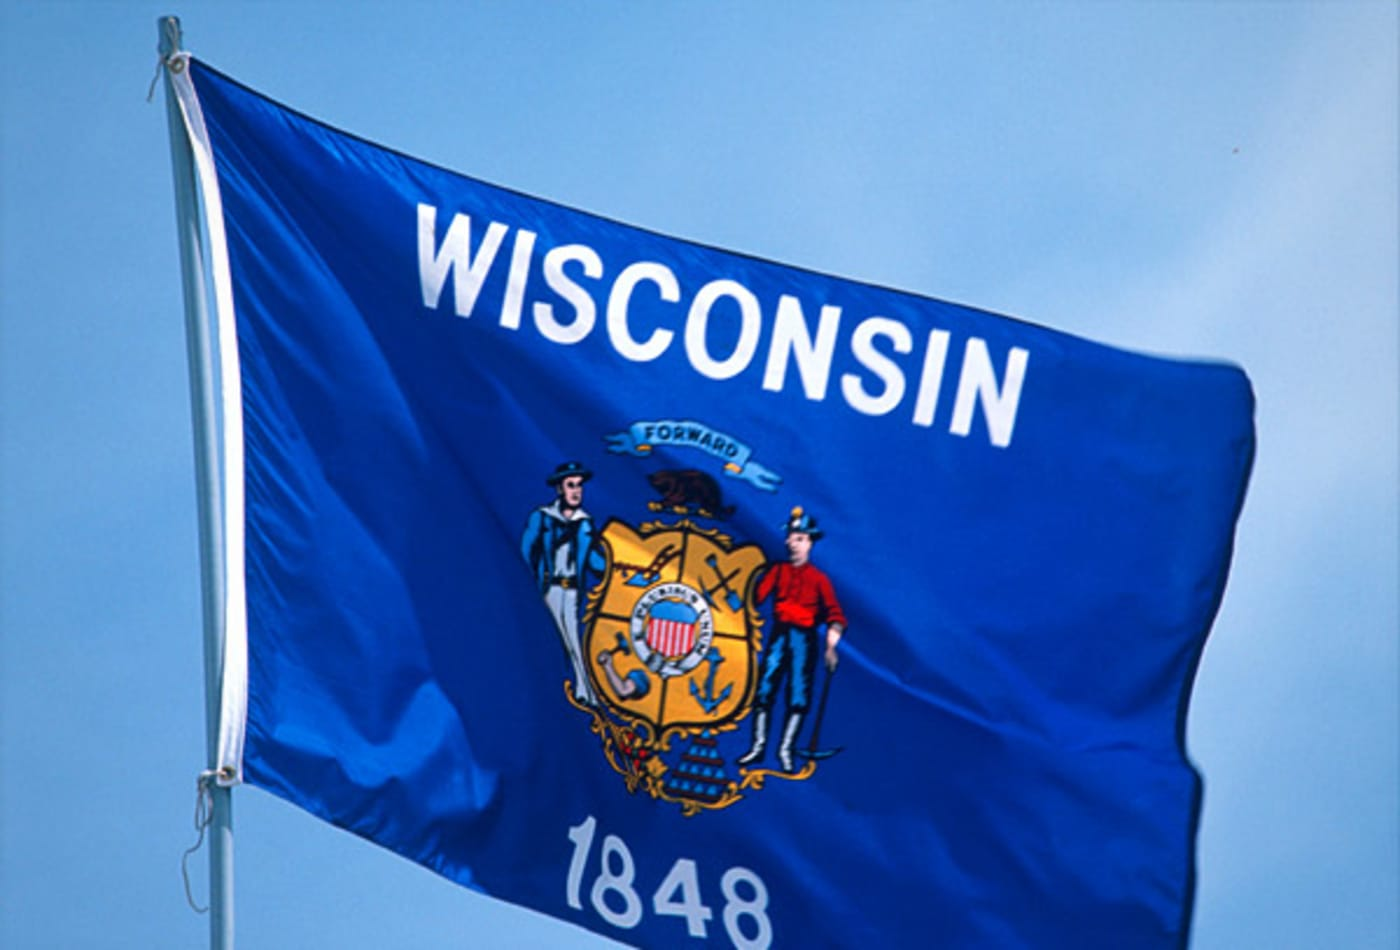 Wisconsin-States-With-The-Best-Credit-Scores-CNBC.jpg